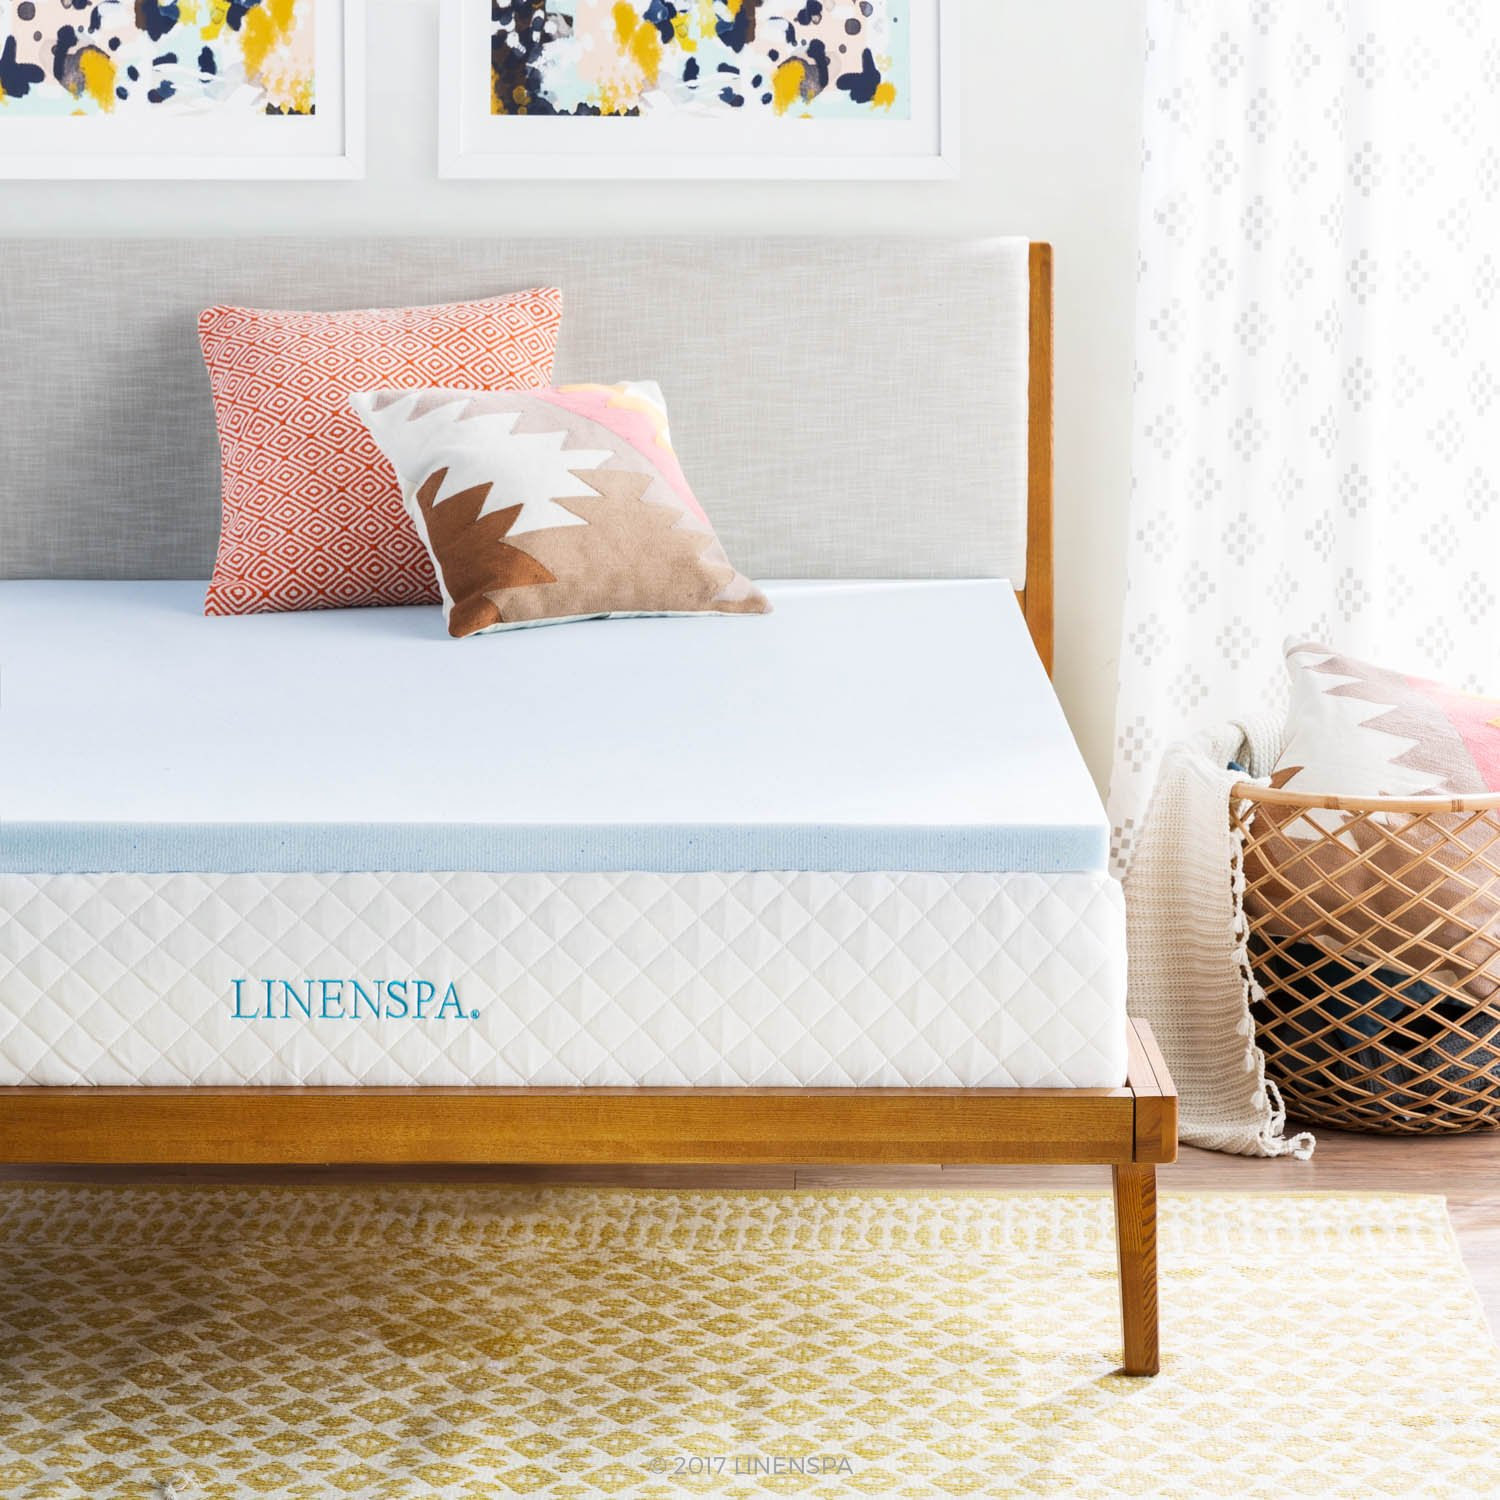 Linenspa 2 Inch Gel Infused Memory Foam Mattress Topper - Twin size by Linenspa